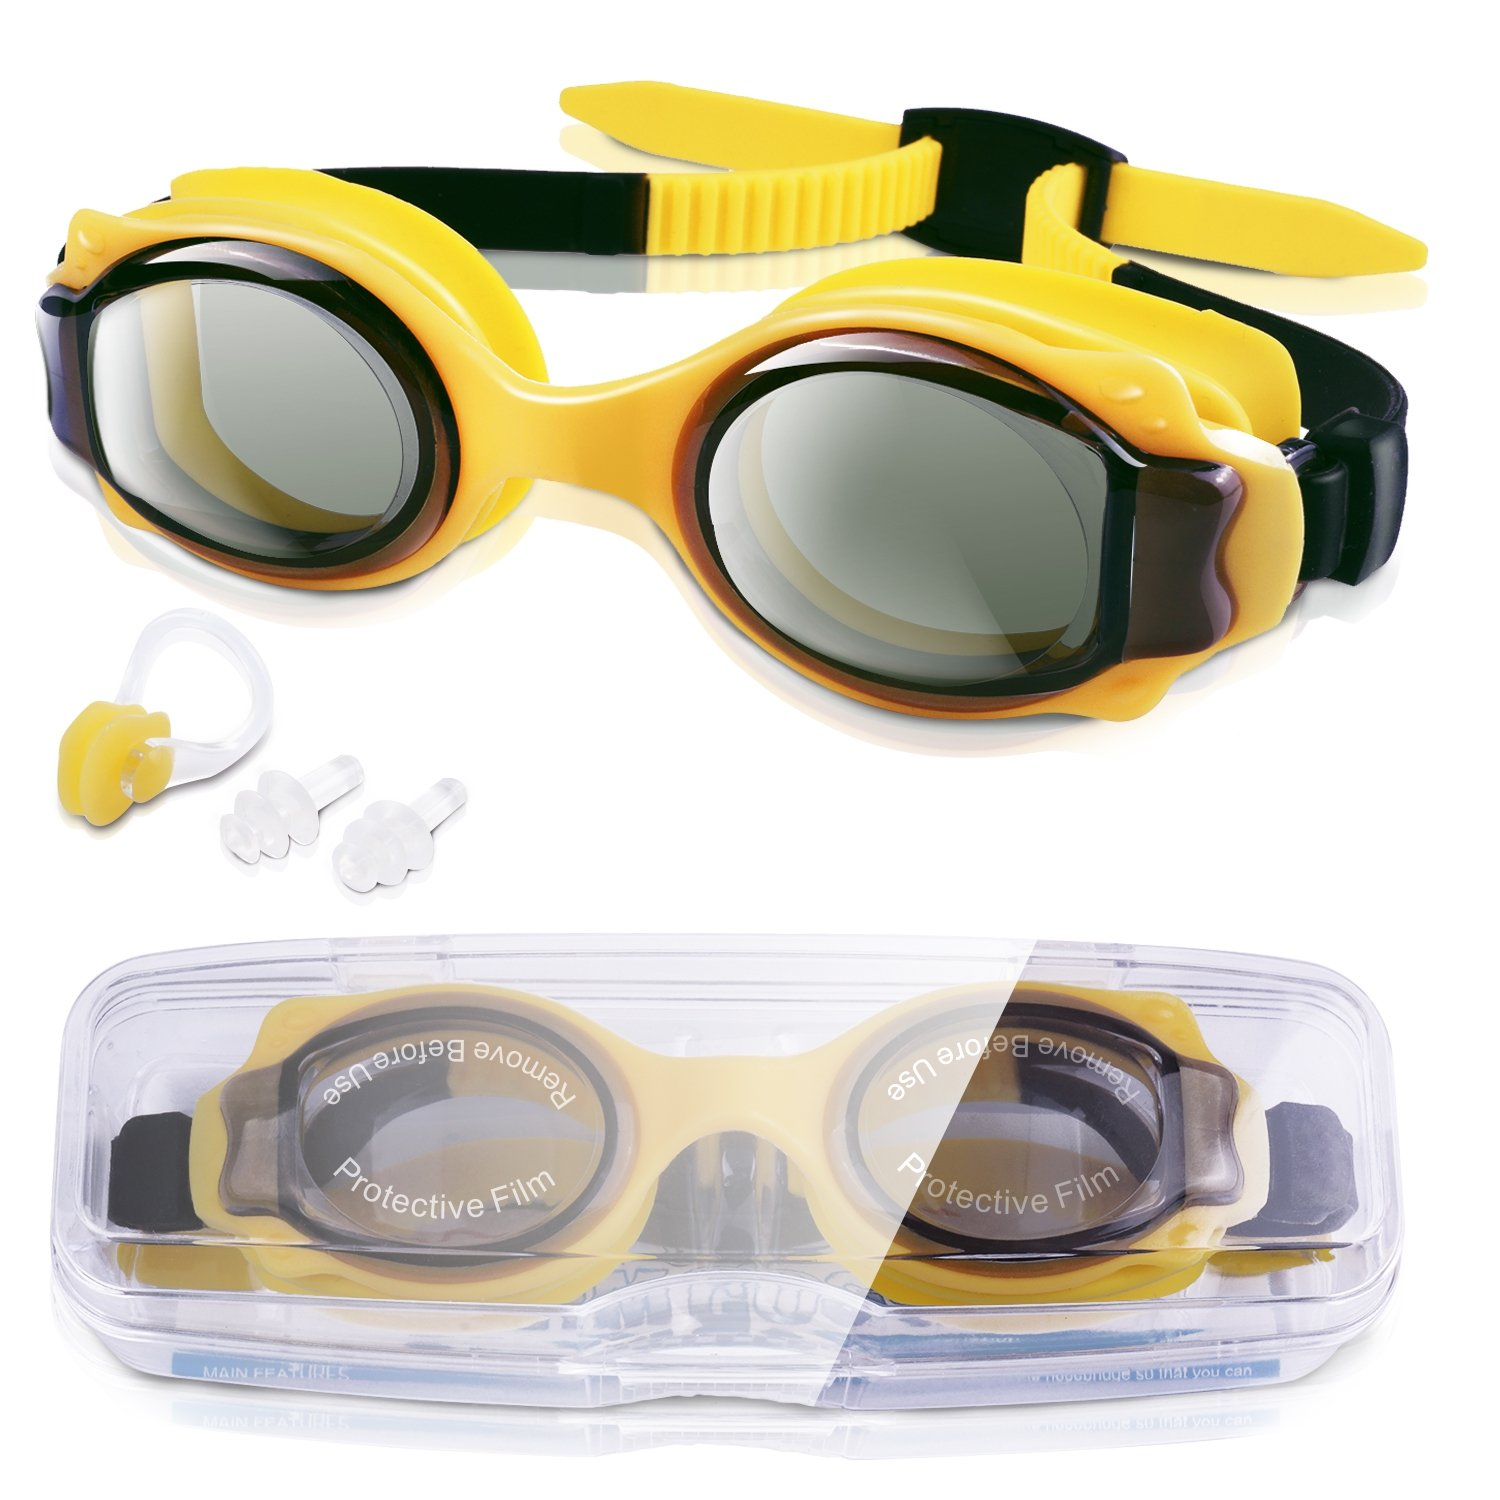 GKCI Kids Swimming Goggles, Waterproof Swim Goggles Swimming Glasses With Clear Vision for Children and Early Teens (Age 4-12), Anti-Fog Lenses, Waterproof, UV Protection, No Leak And Strap